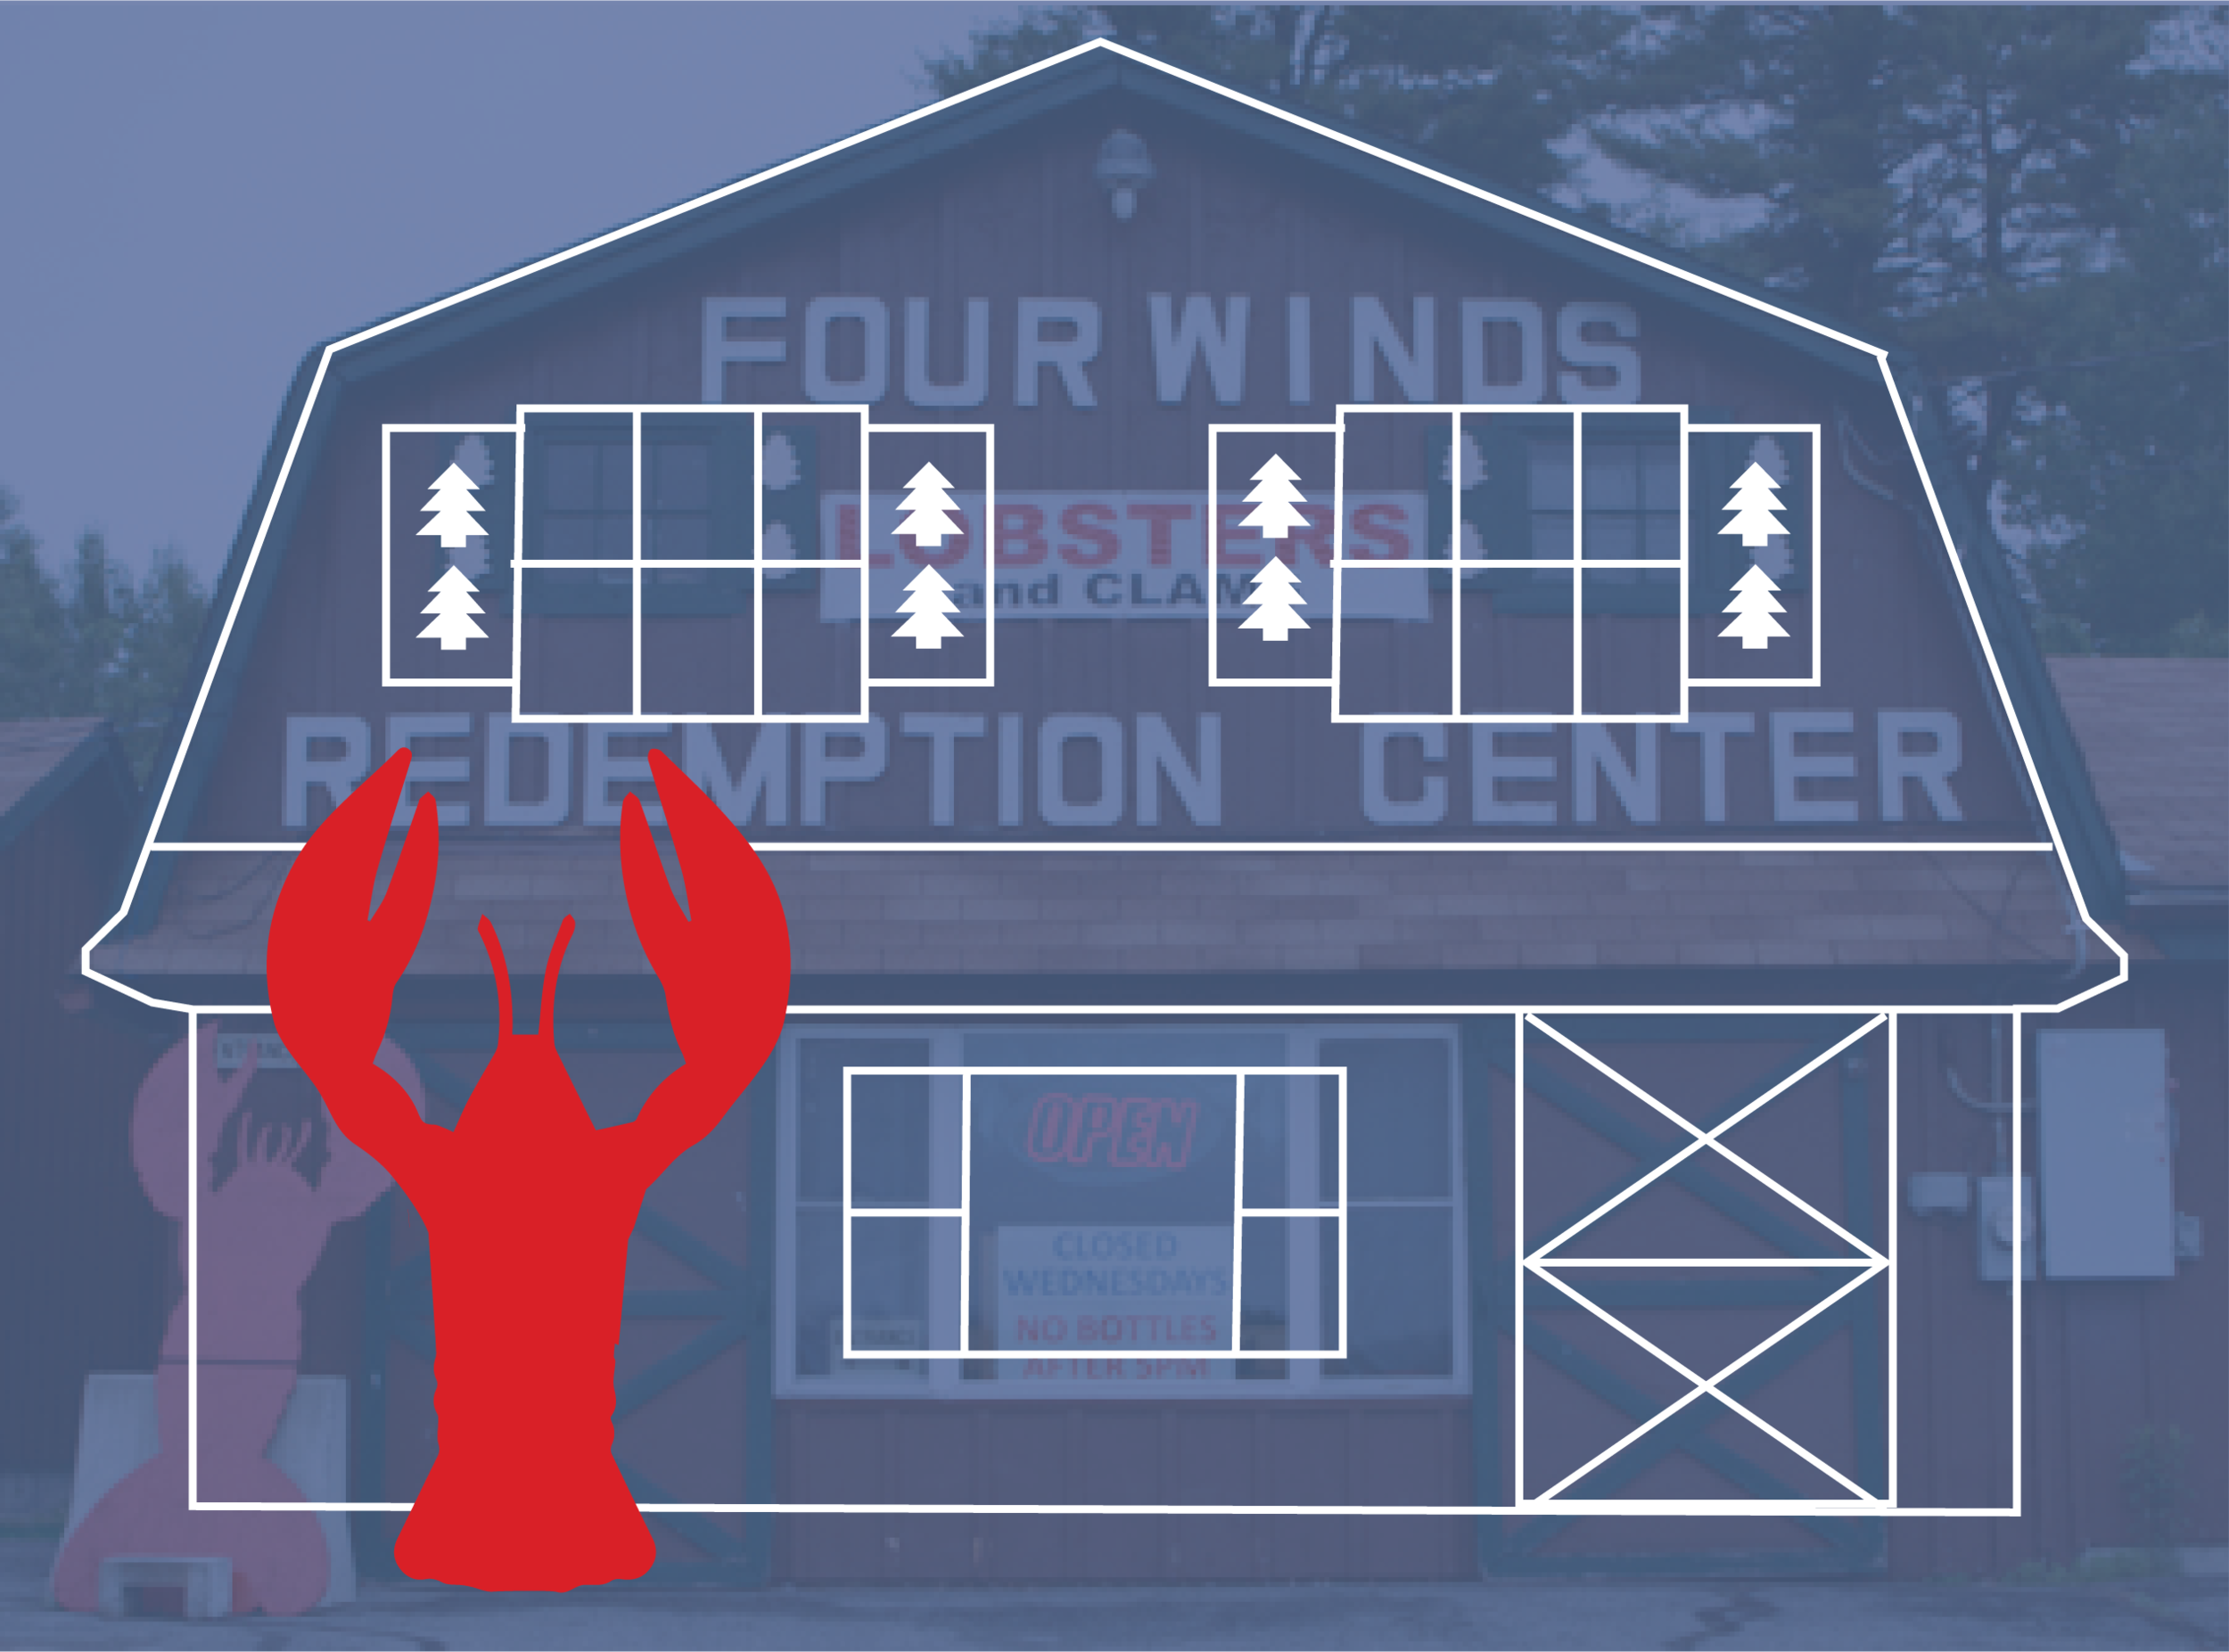 logo over building.png